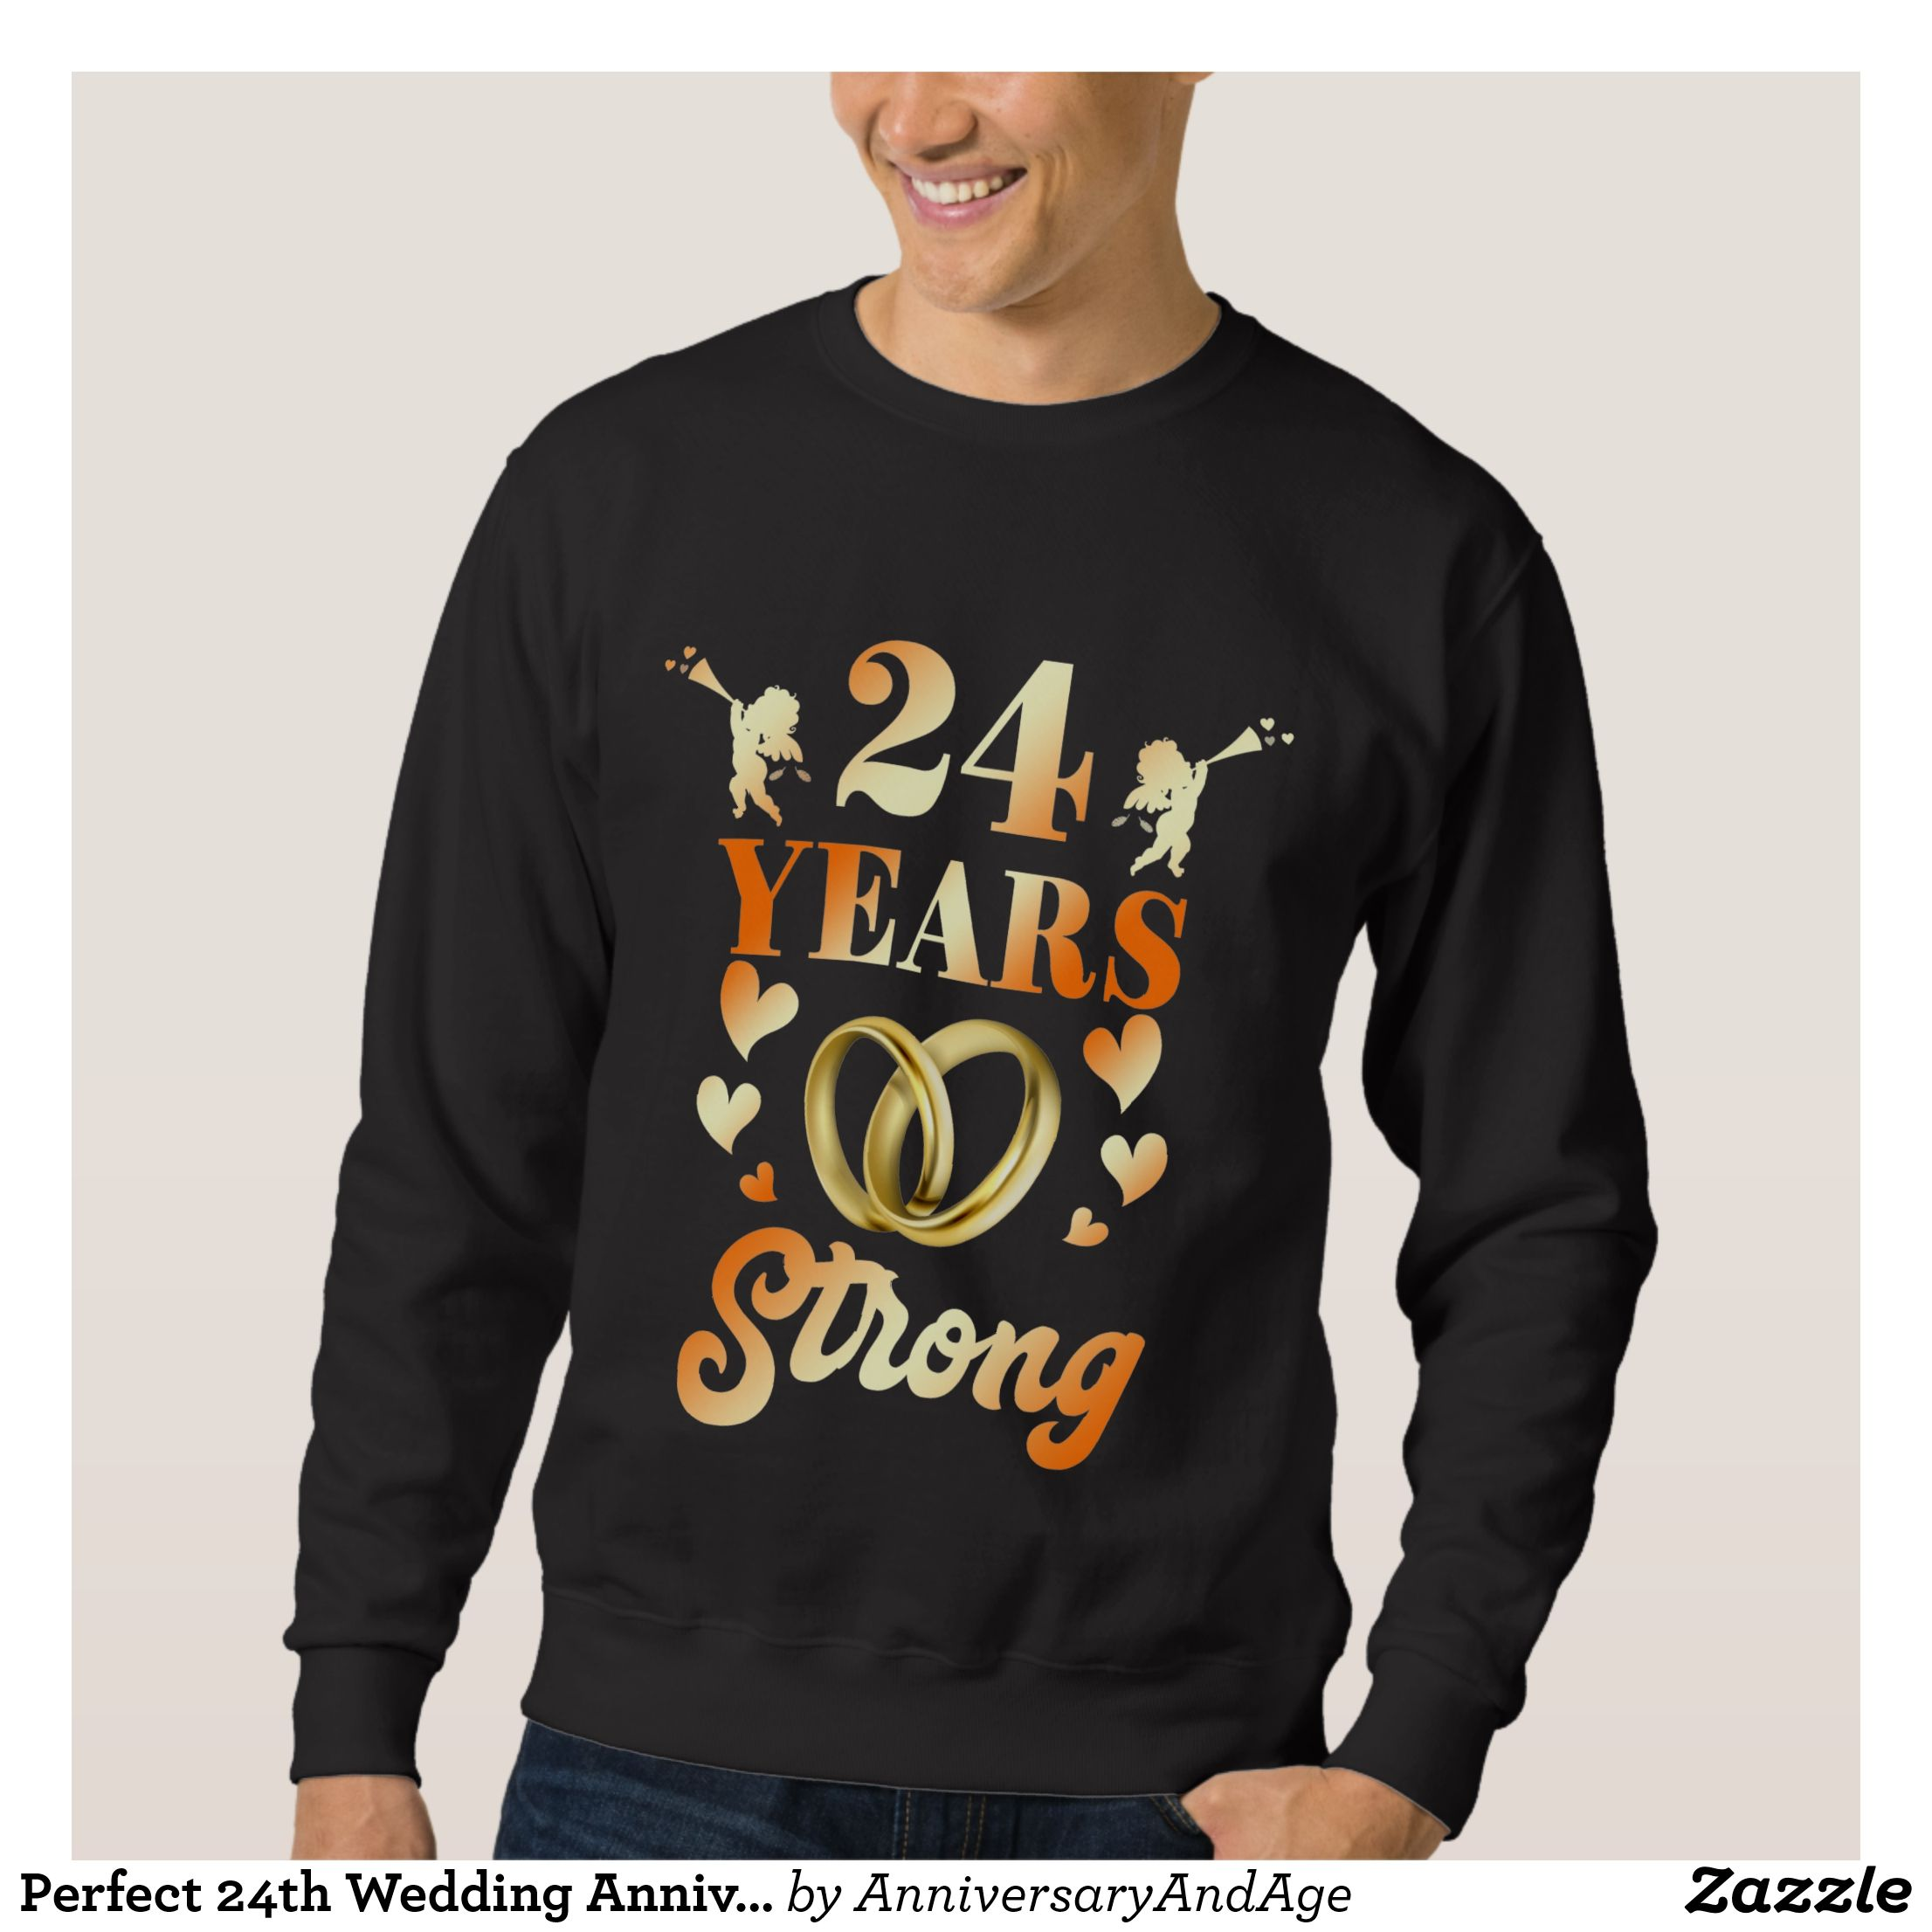 Perfect 24th Wedding Anniversary Gift For Couple Sweatshirt 24th